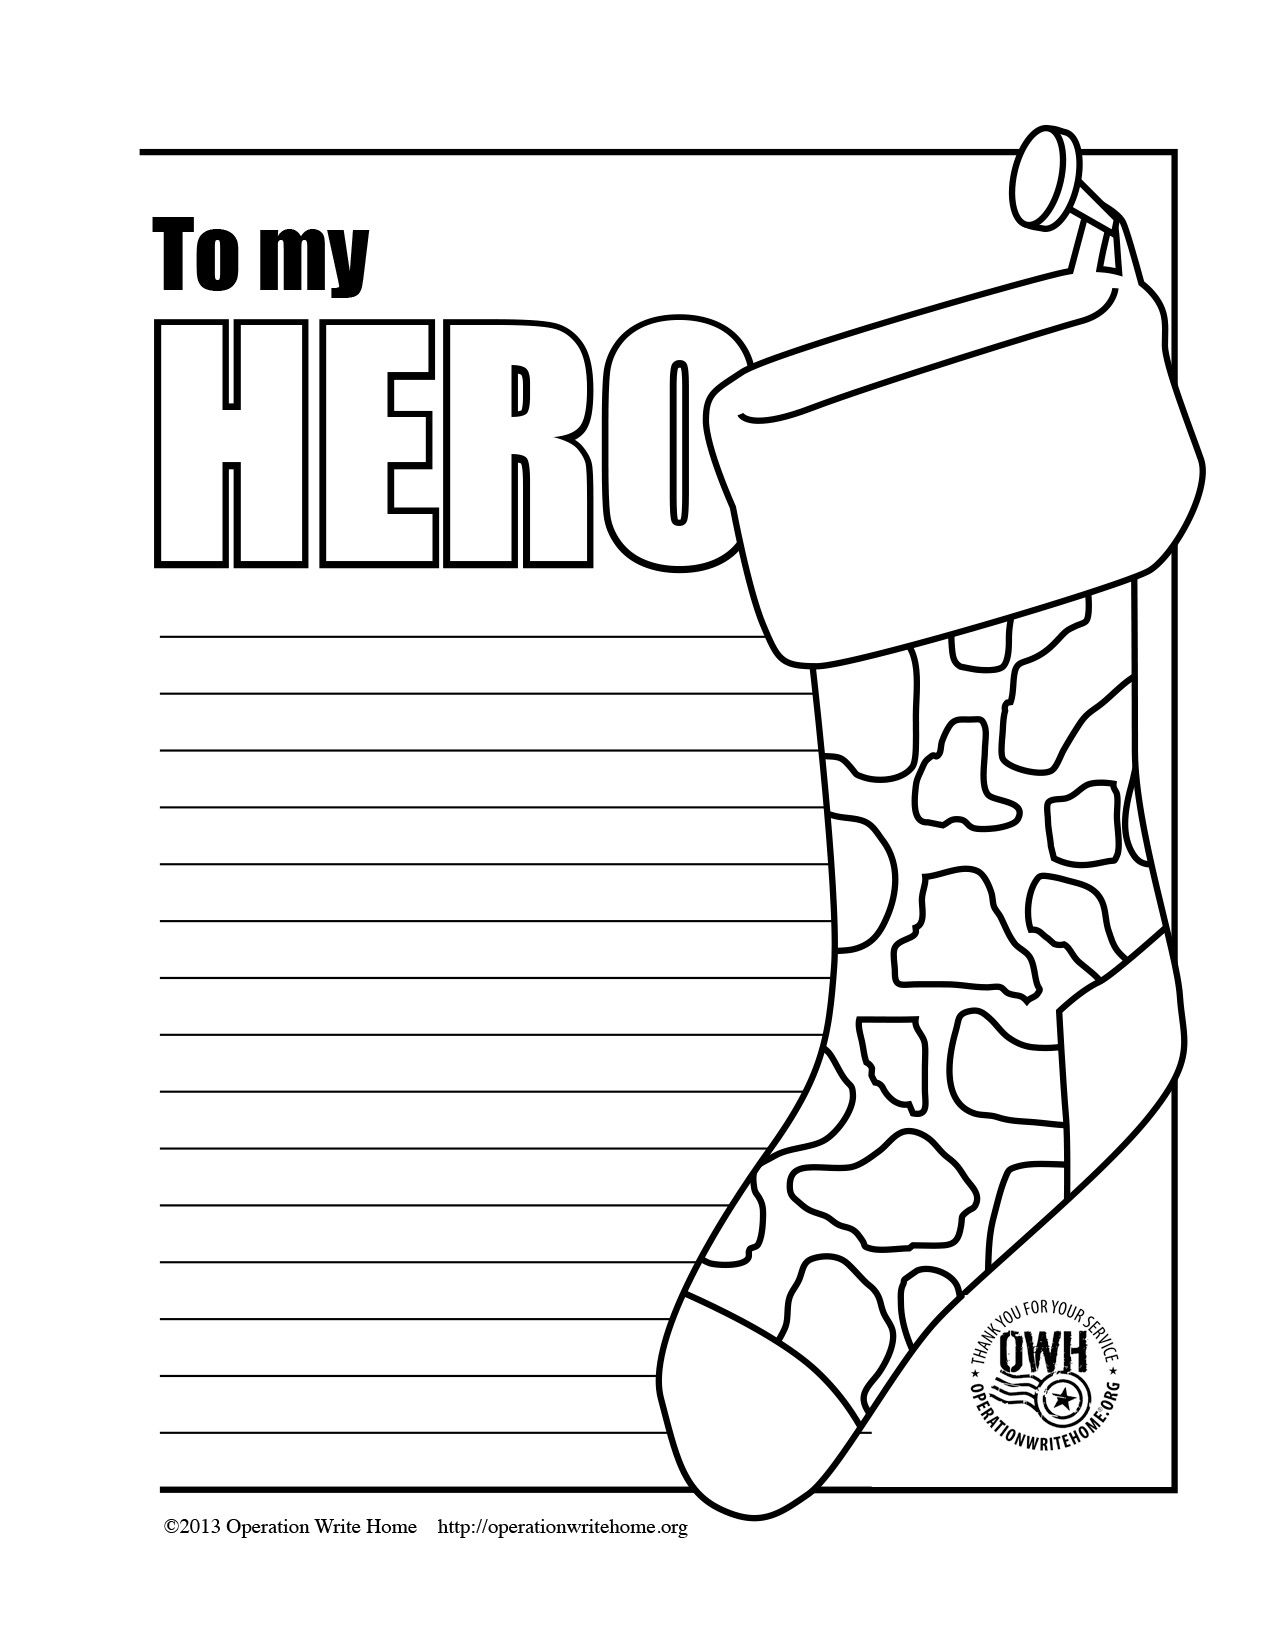 Coloring Pages Military Christmas Military Christmas Cards Patriotic Christmas Cards